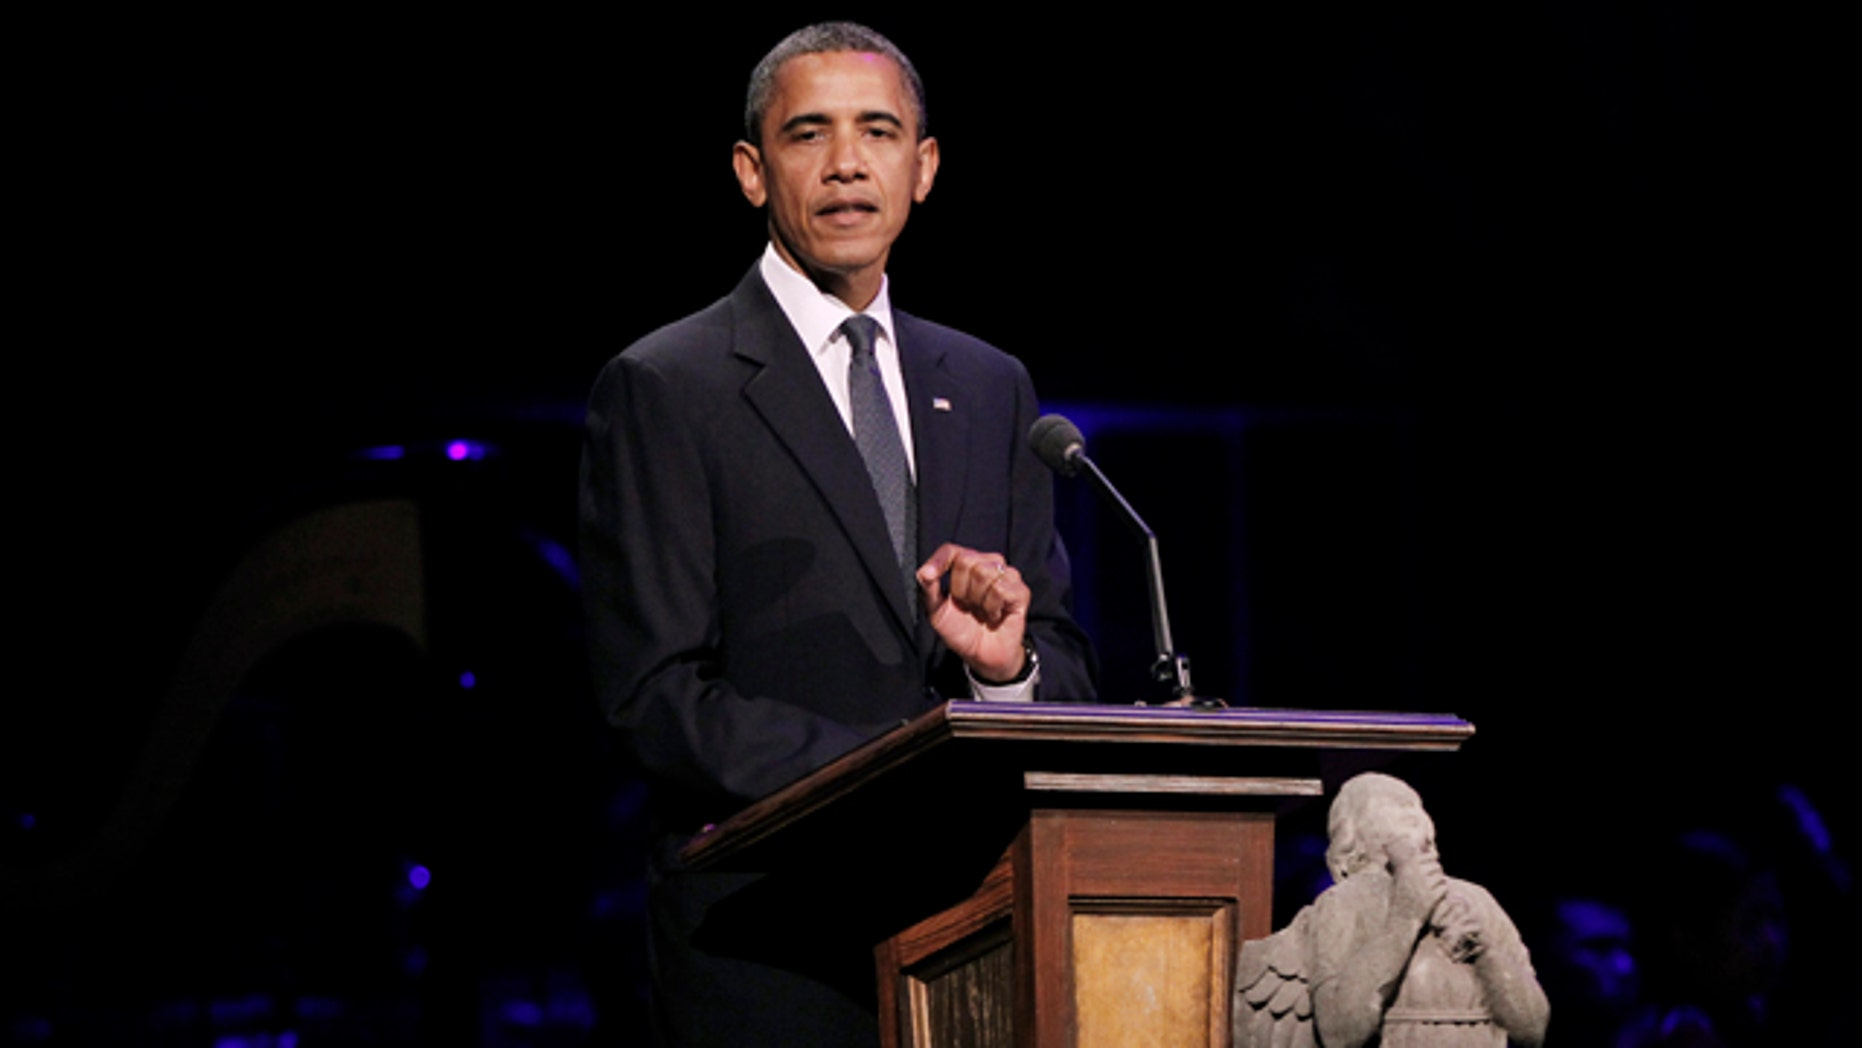 President Barack Obama speaks at 'A Concert for Hope' at the Kennedy Center in Washington.